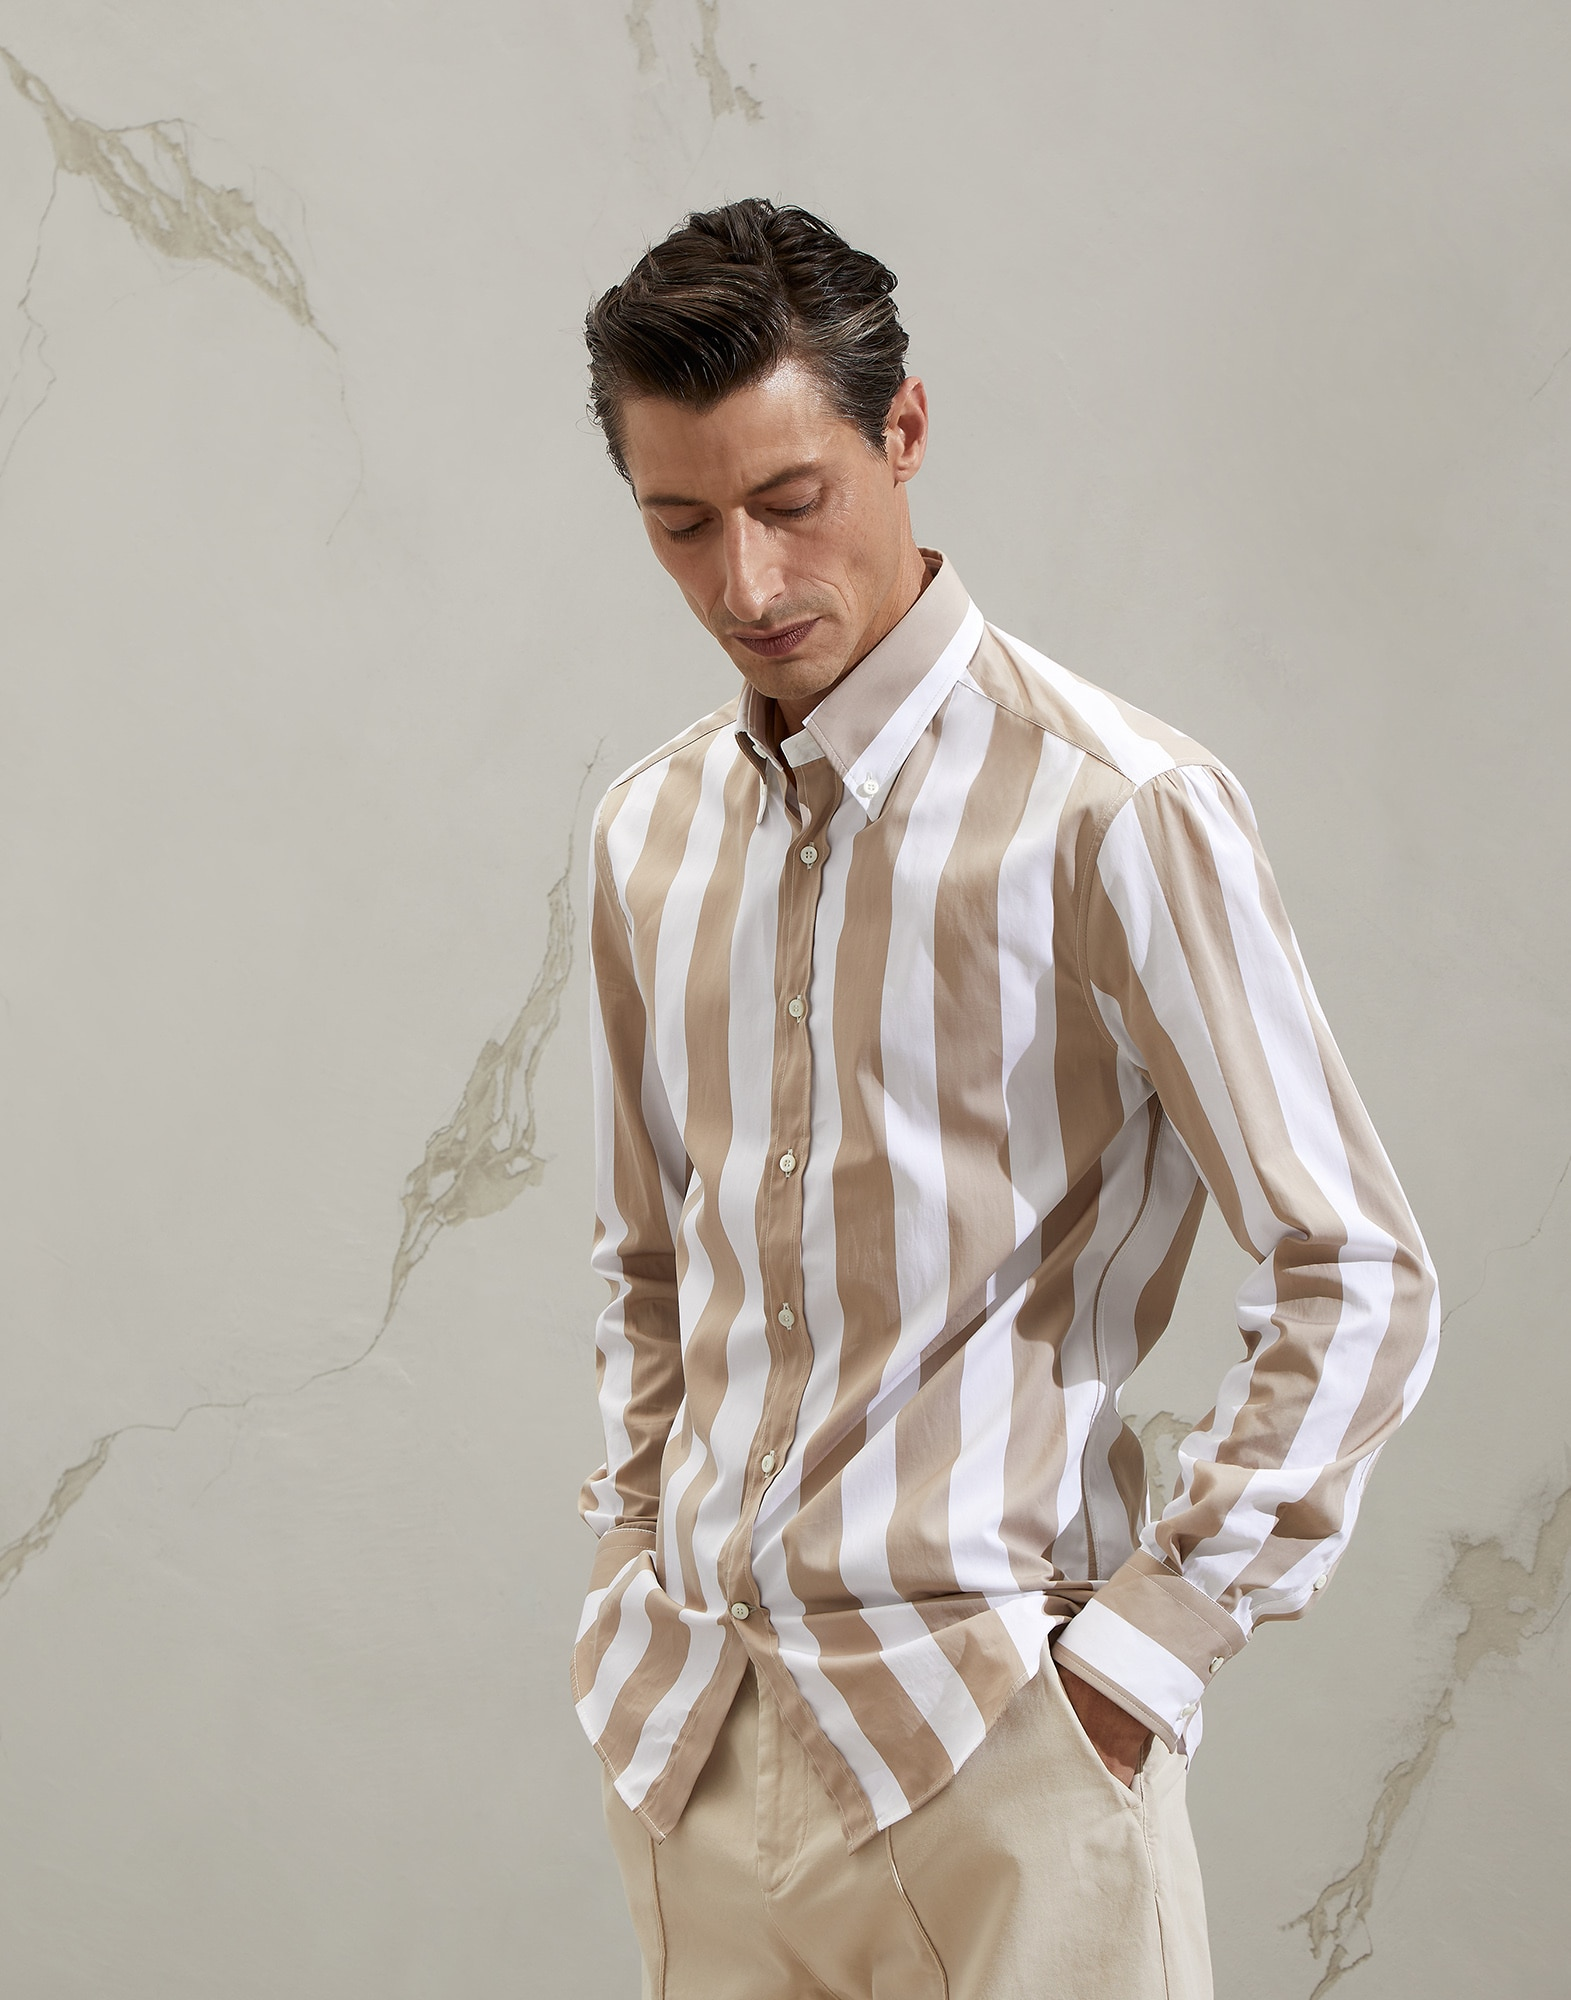 Cotton Shirt - Front view